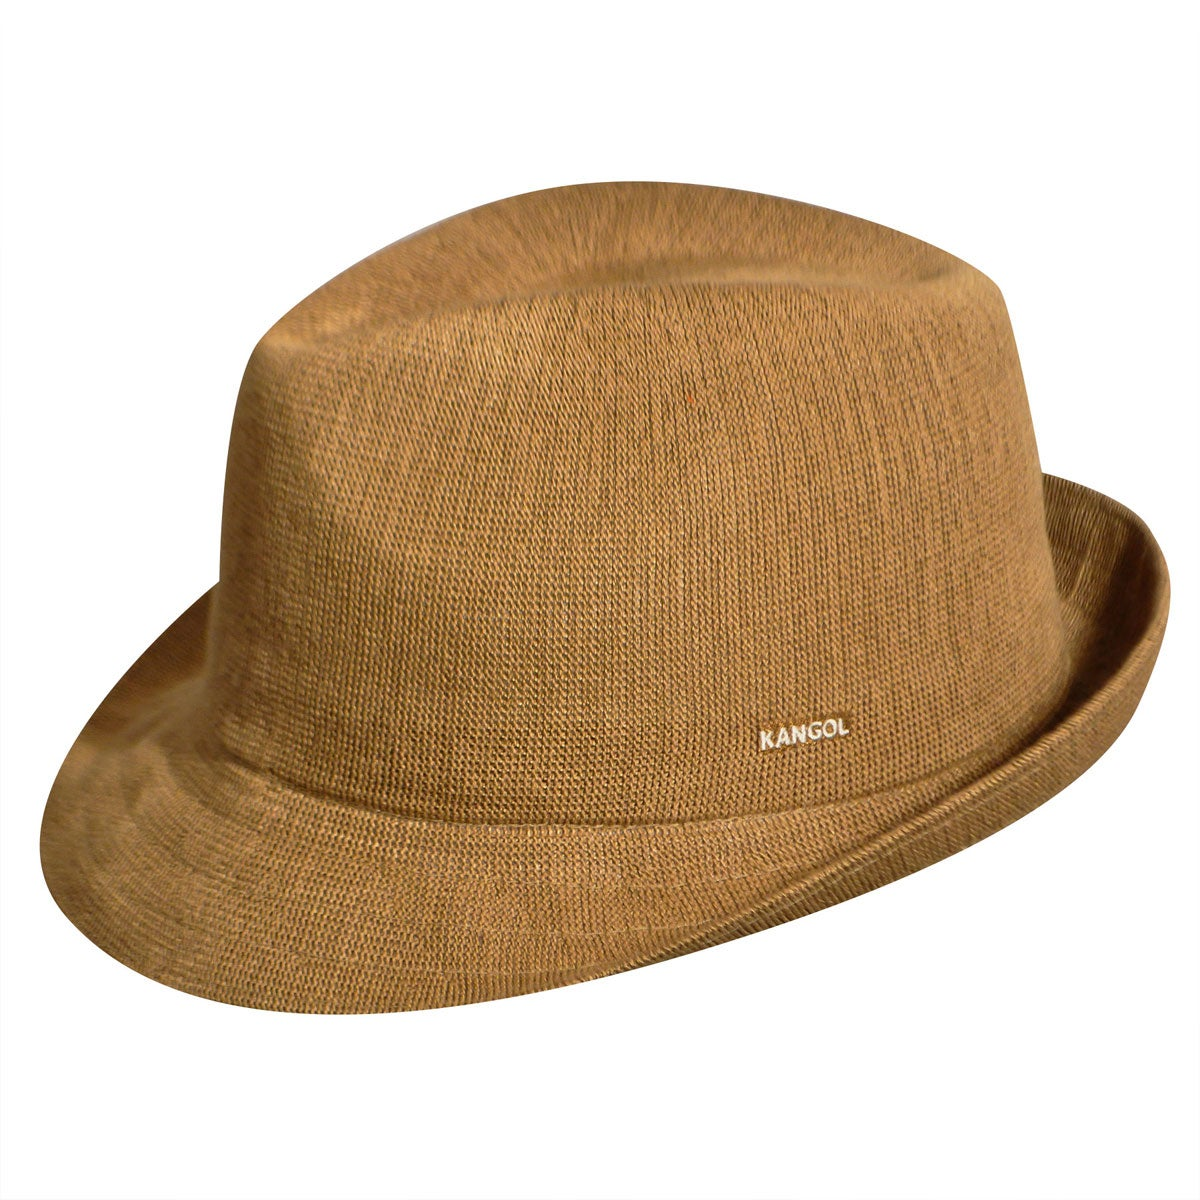 1960s – 70s Style Men's Hats Bamboo Arnold Trilby $45.00 AT vintagedancer.com